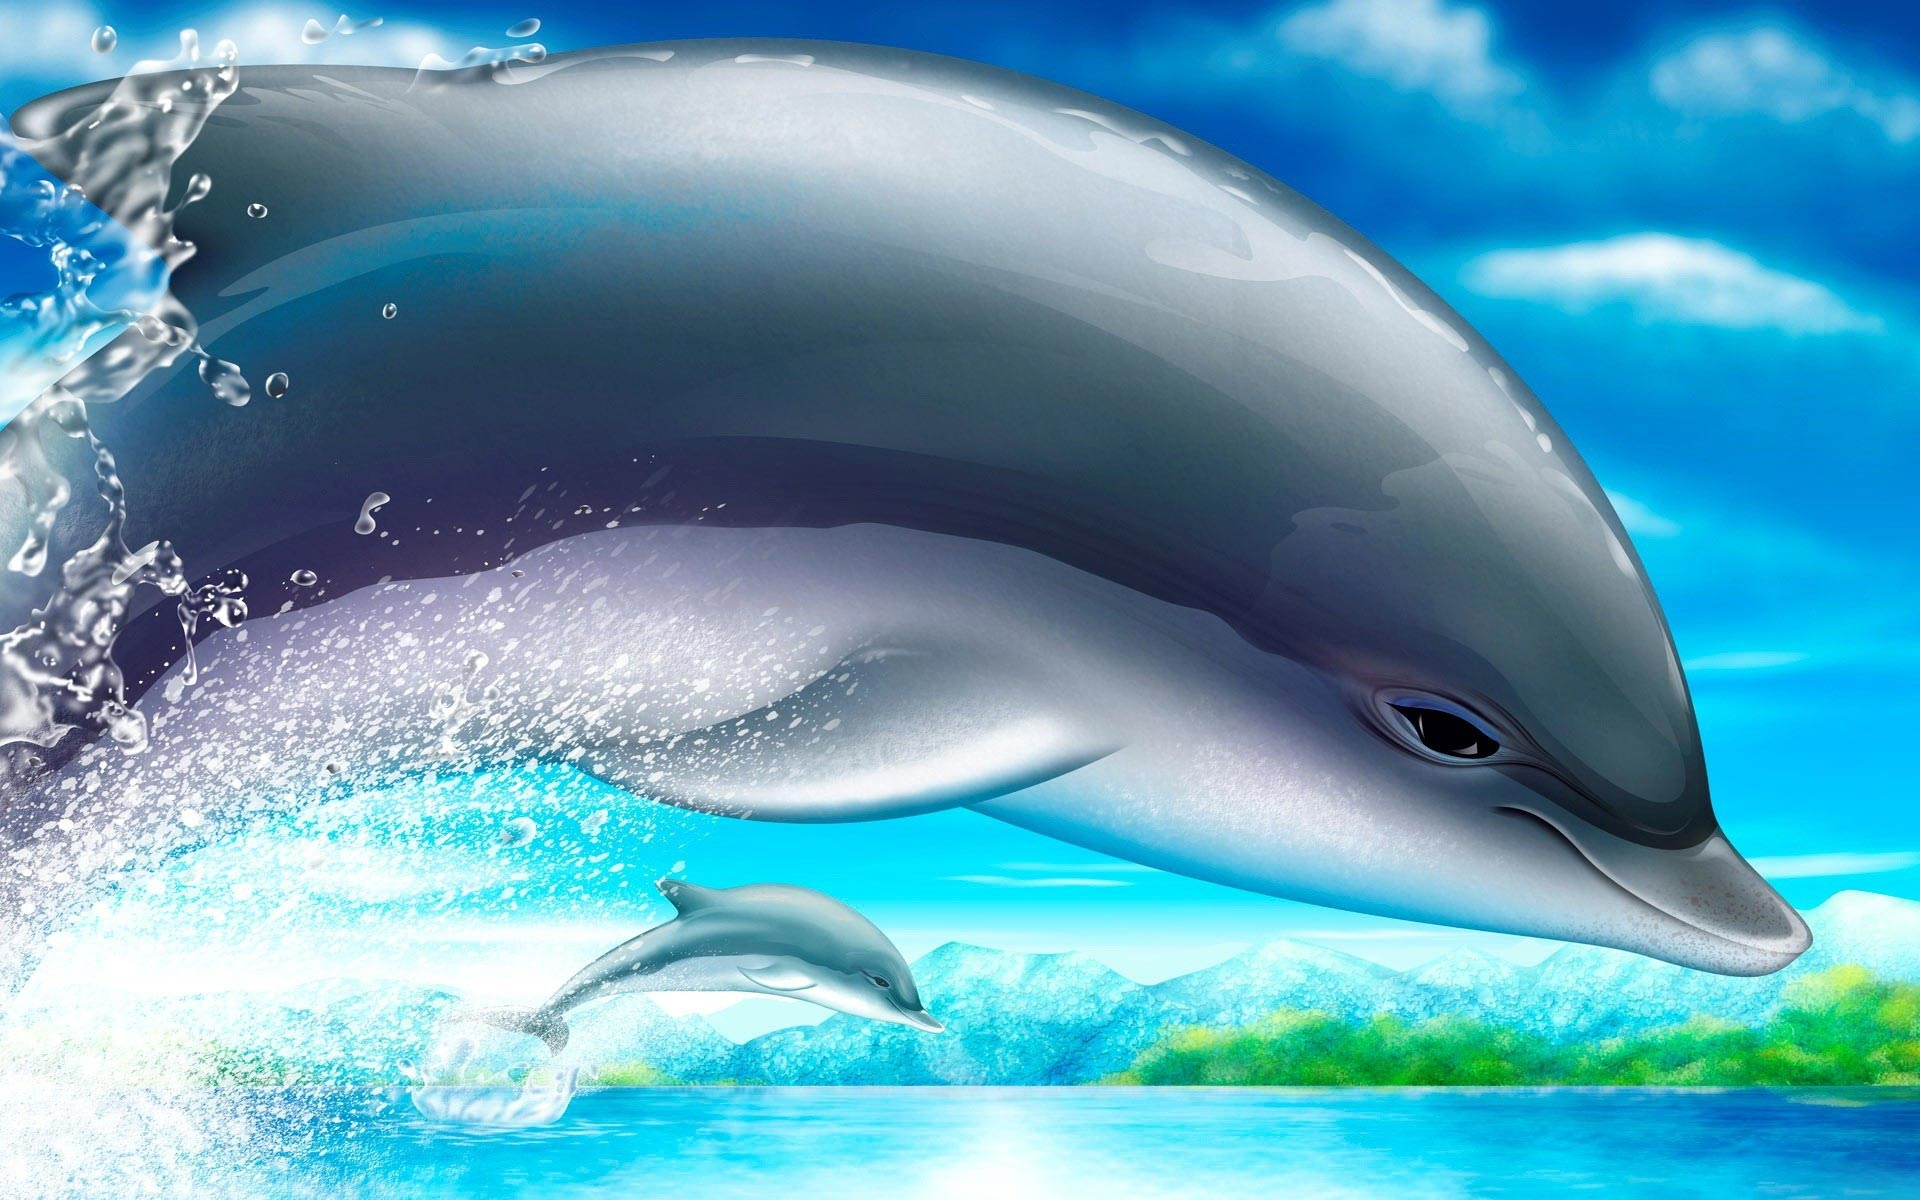 Cute Dolphin Wallpaper   HD Wallpapers 1920x1200